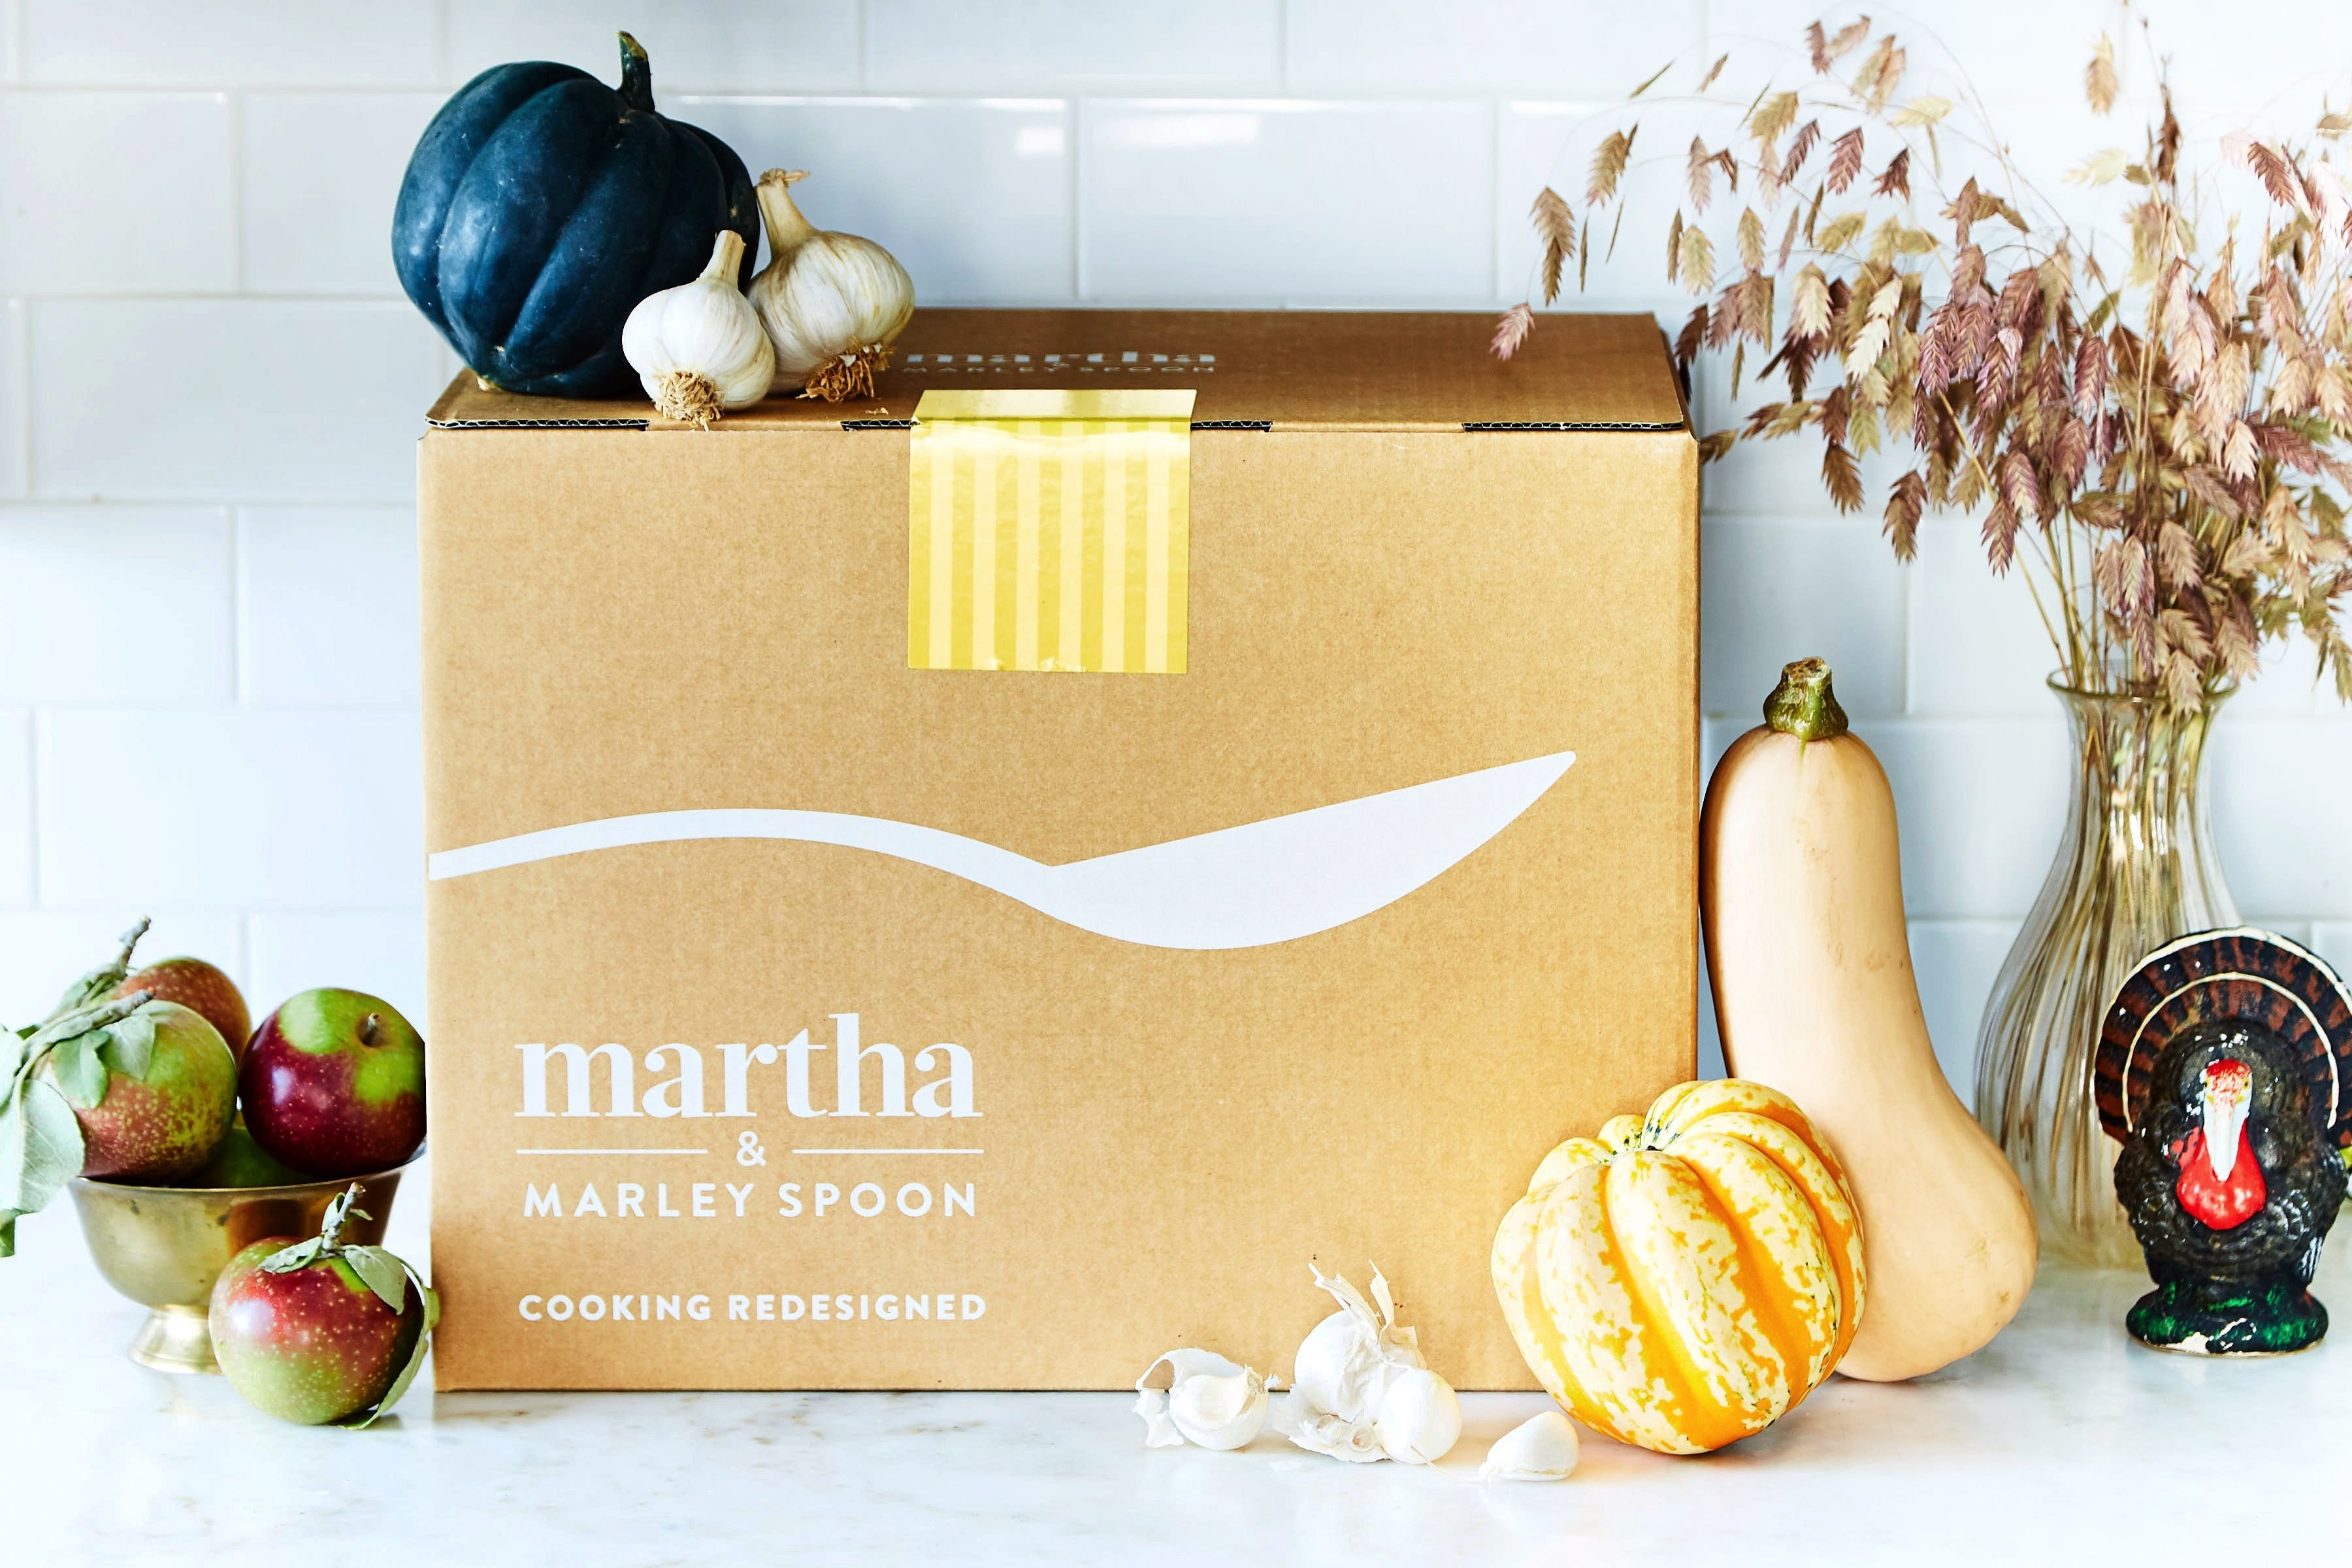 Martha & Marley Spoon Box